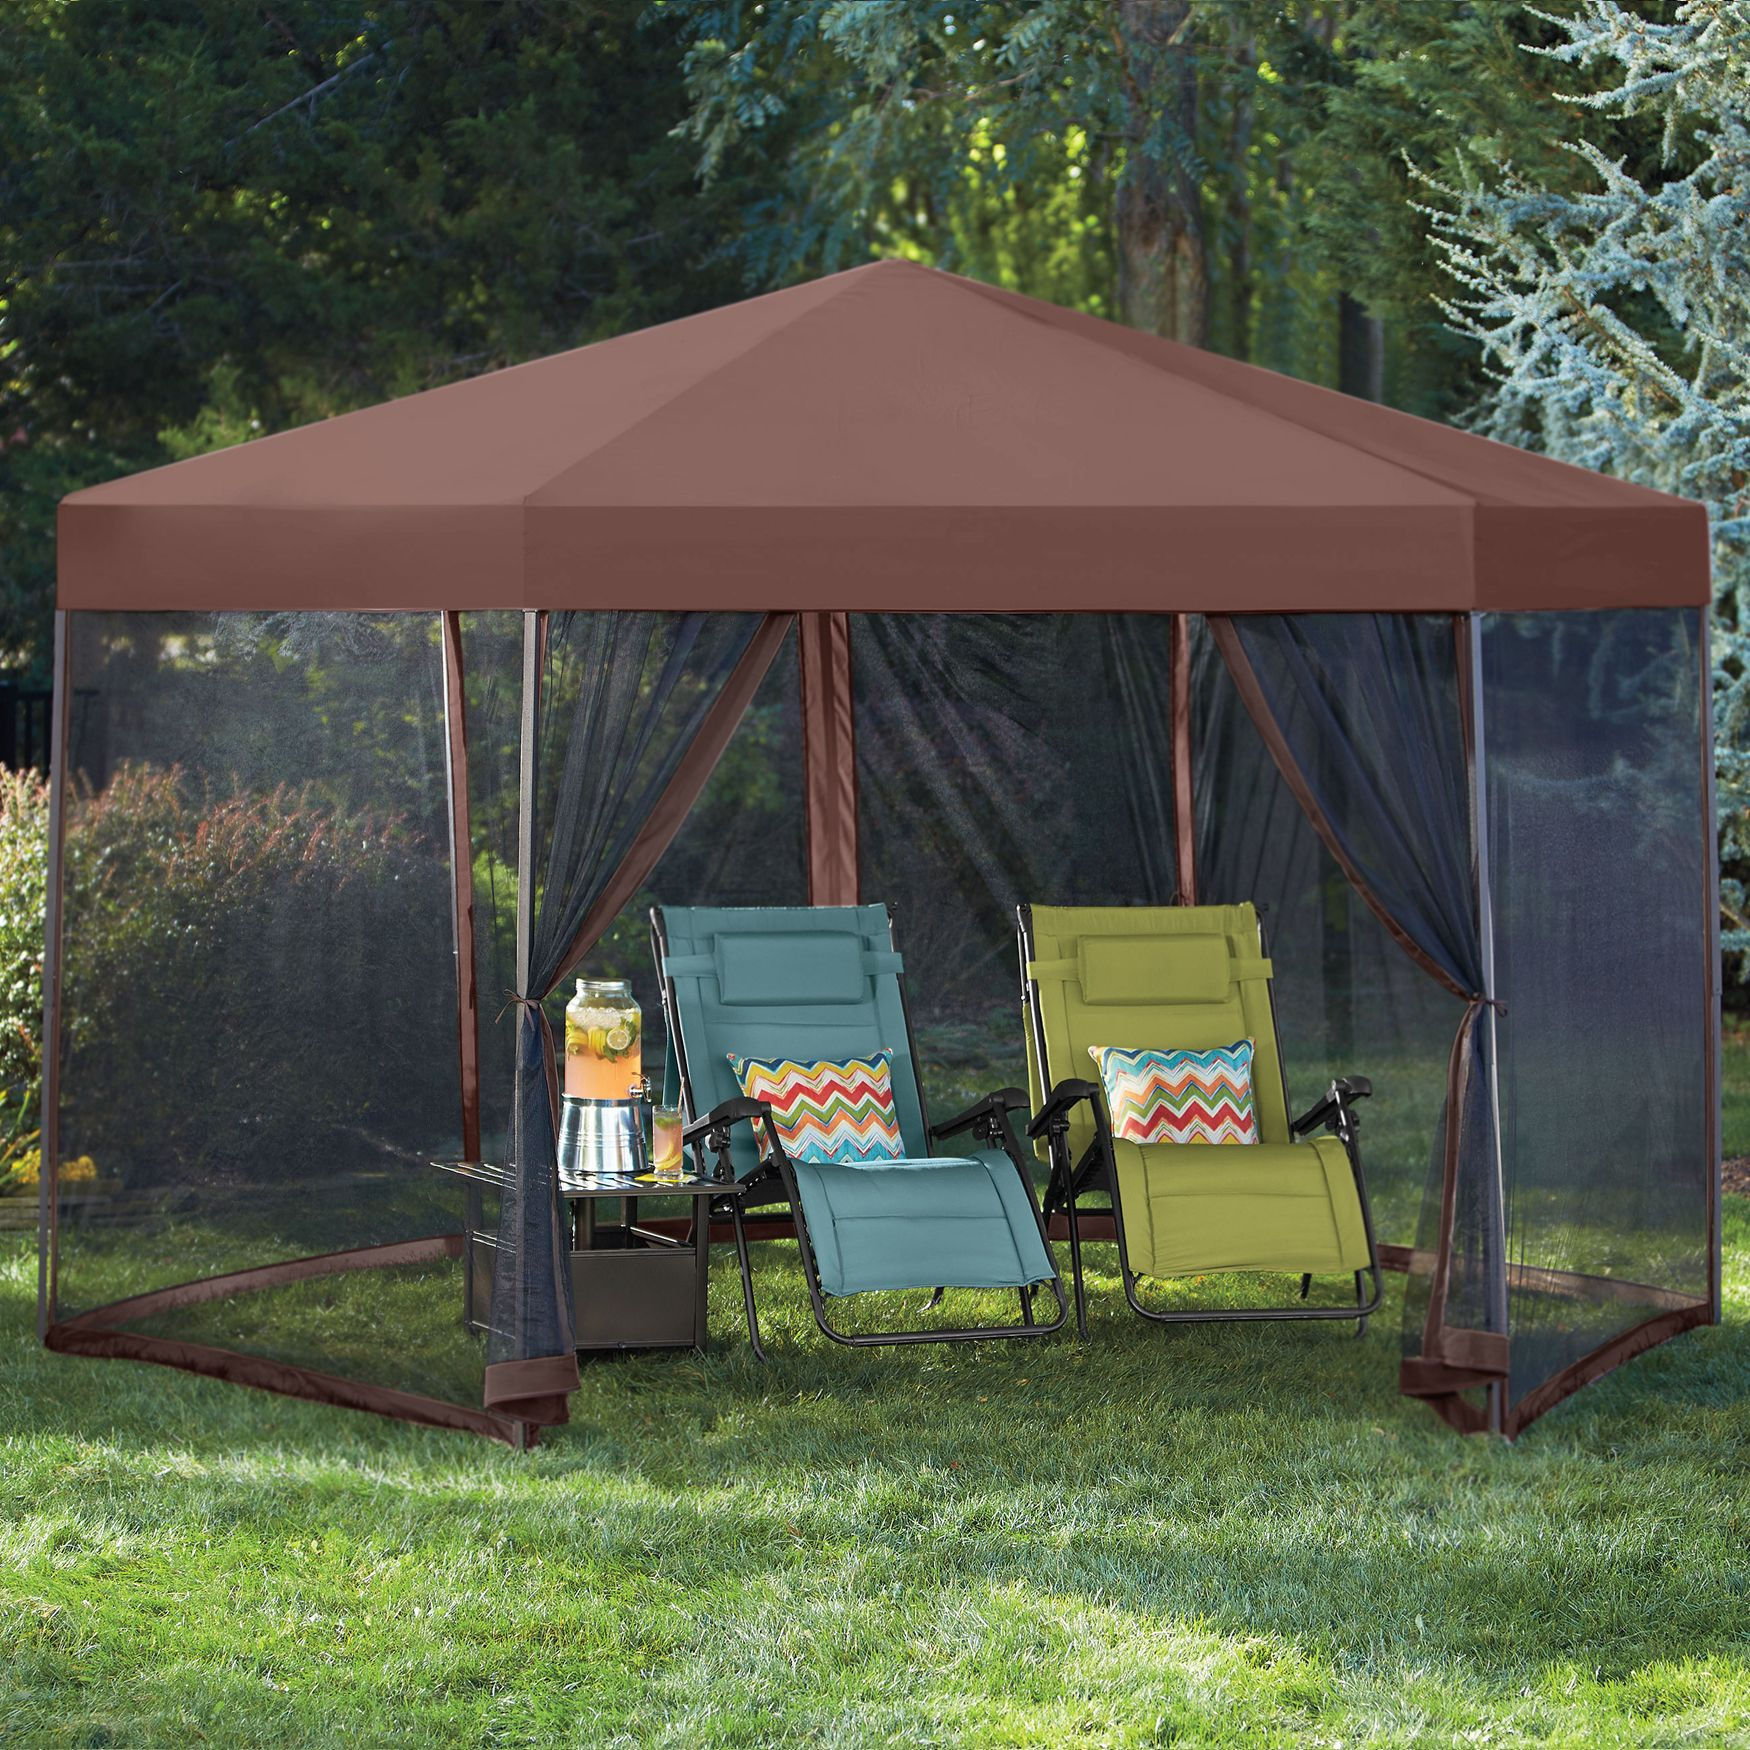 128 Sq. FT. Hexagonal Gazebo